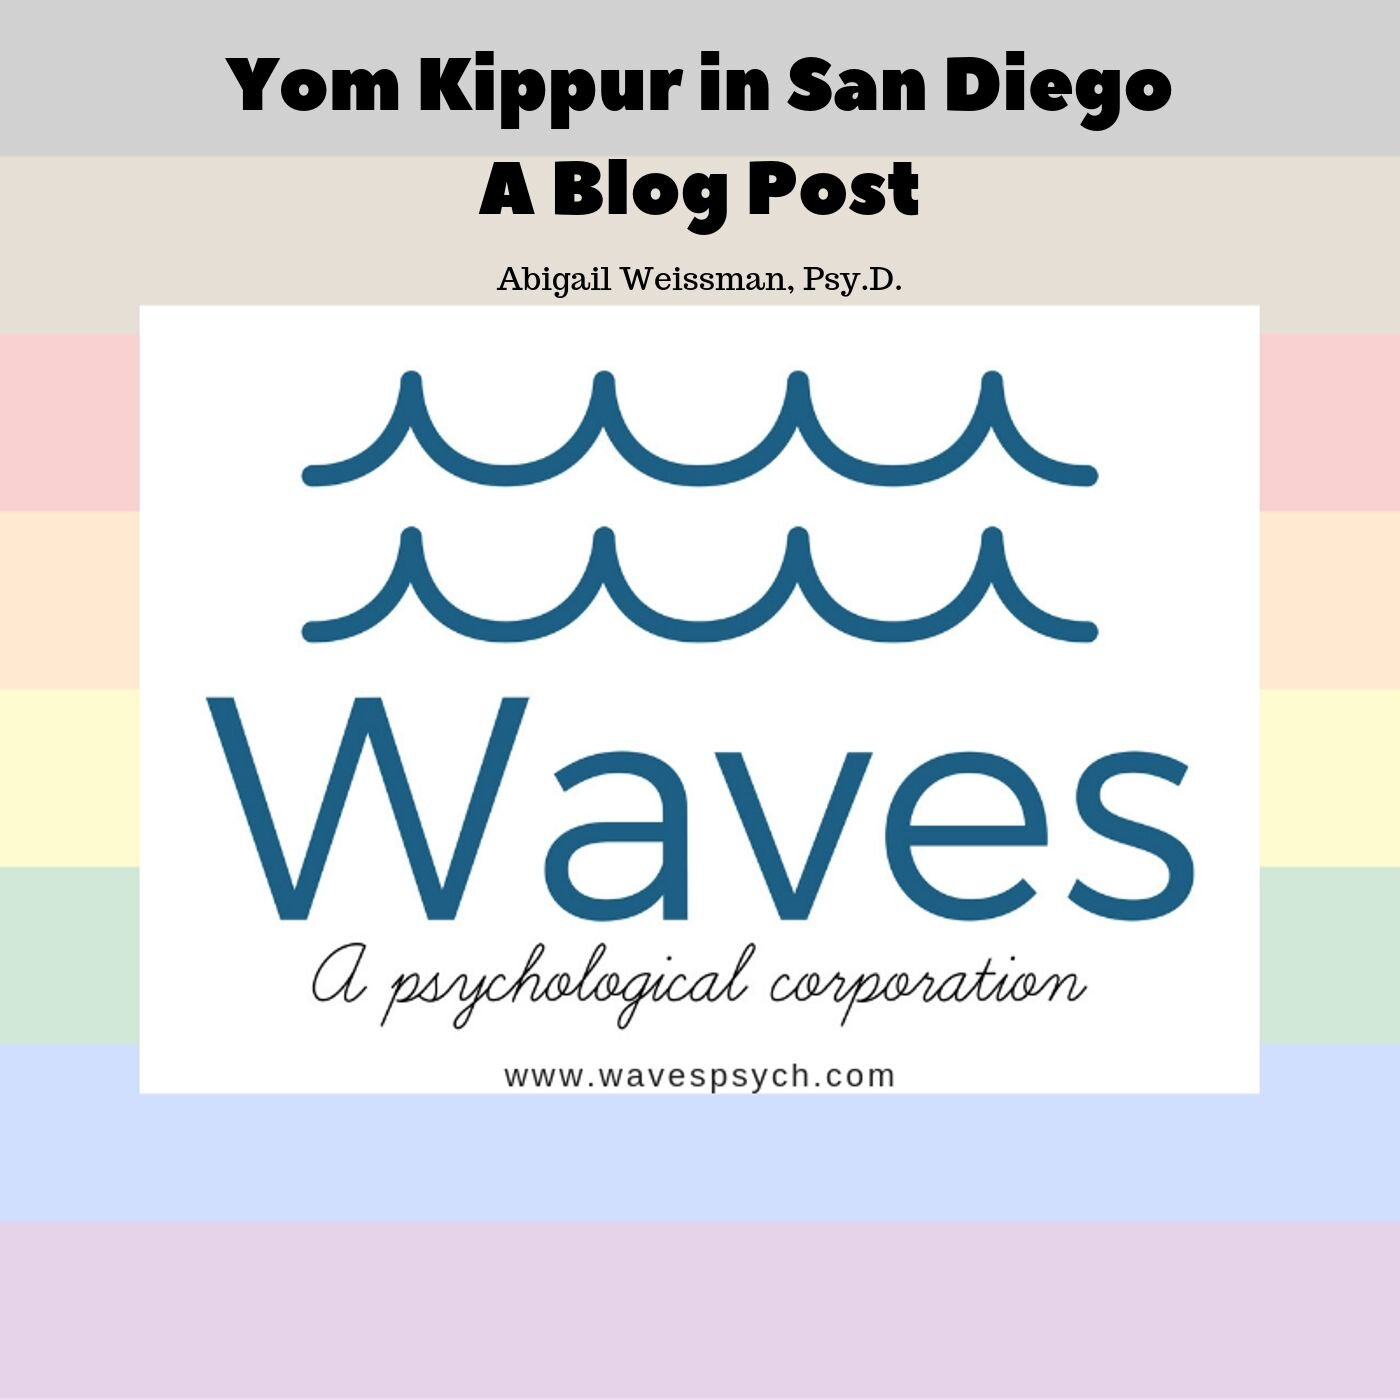 Yom Kippur in San Diego Waves.jpg